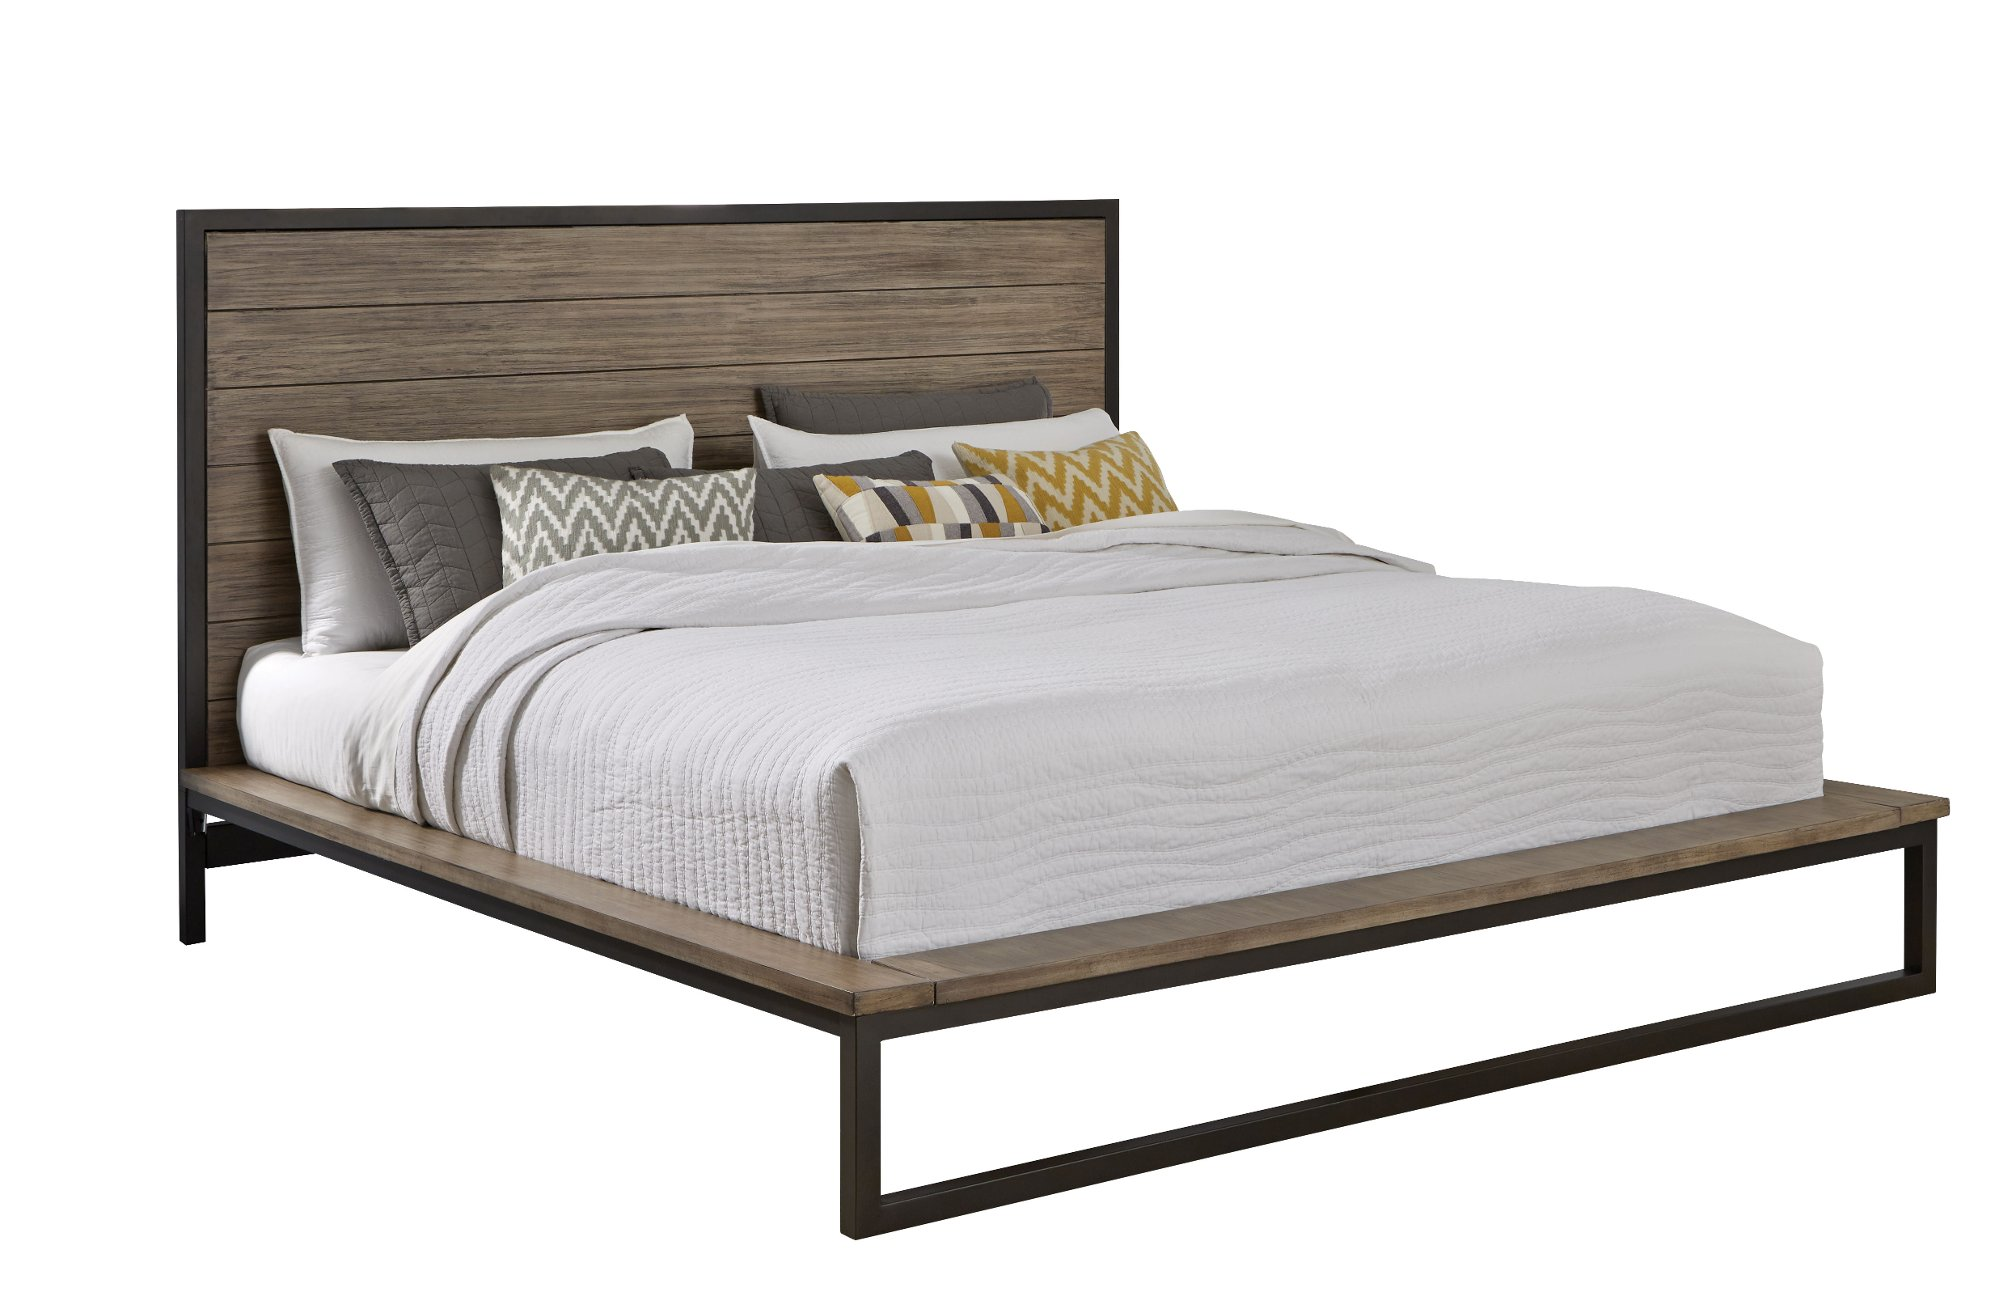 industrial modern pine metal 6 piece king bedroom set edgewood rc willey furniture store. Black Bedroom Furniture Sets. Home Design Ideas